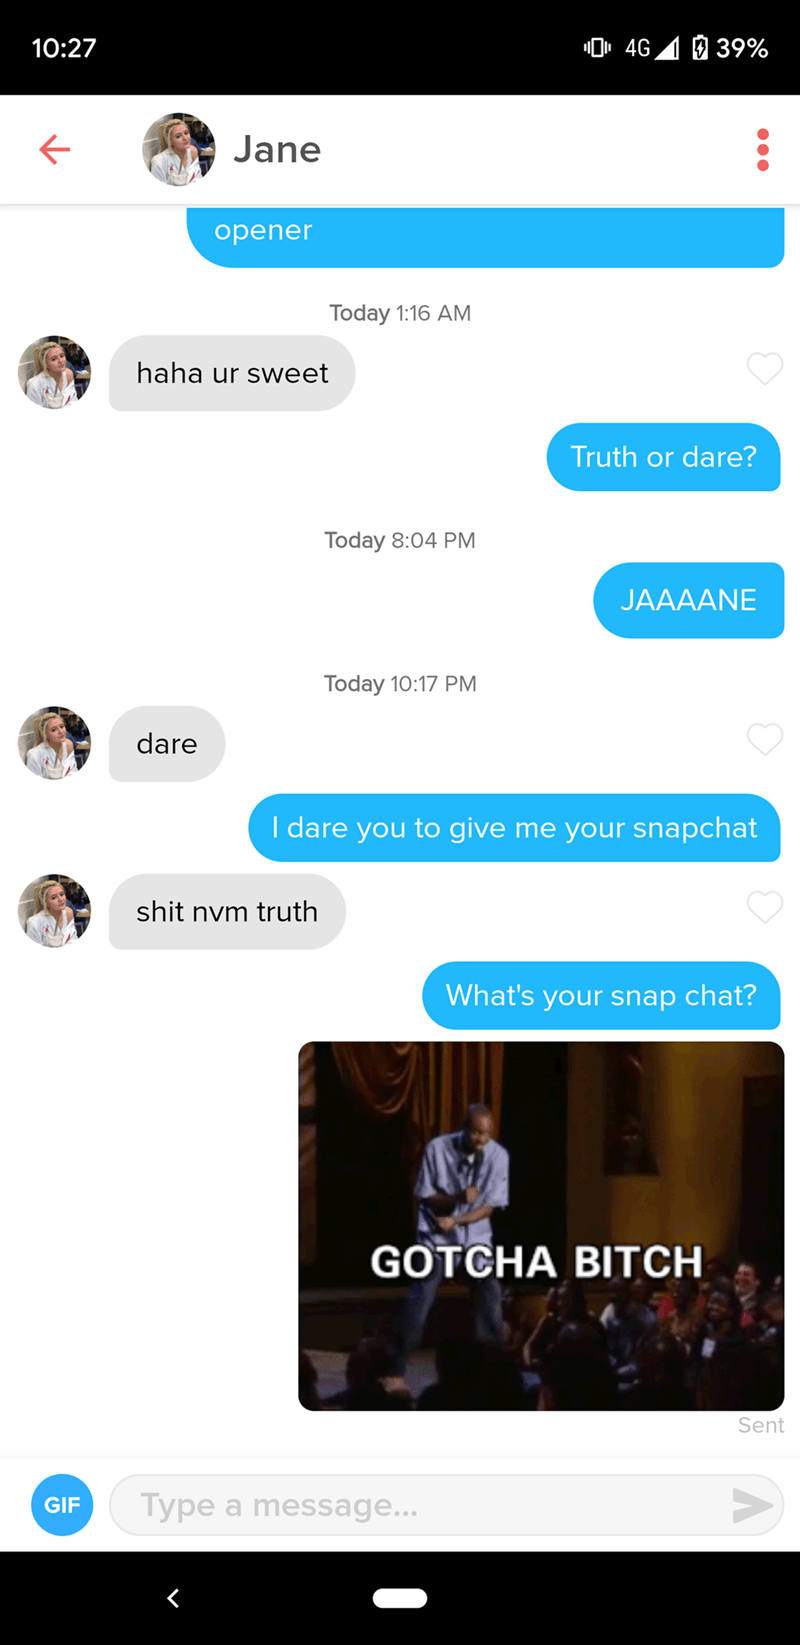 Text - 4G 39% 10:27 Jane opener Today 1:16 AM haha ur sweet Truth or dare? Today 8:04 PM JAAAANE Today 10:17 PM dare I dare you to give me your snapchat shit nvm truth What's your snap chat? GOTCHA BITCH Sent Type a message... GIF